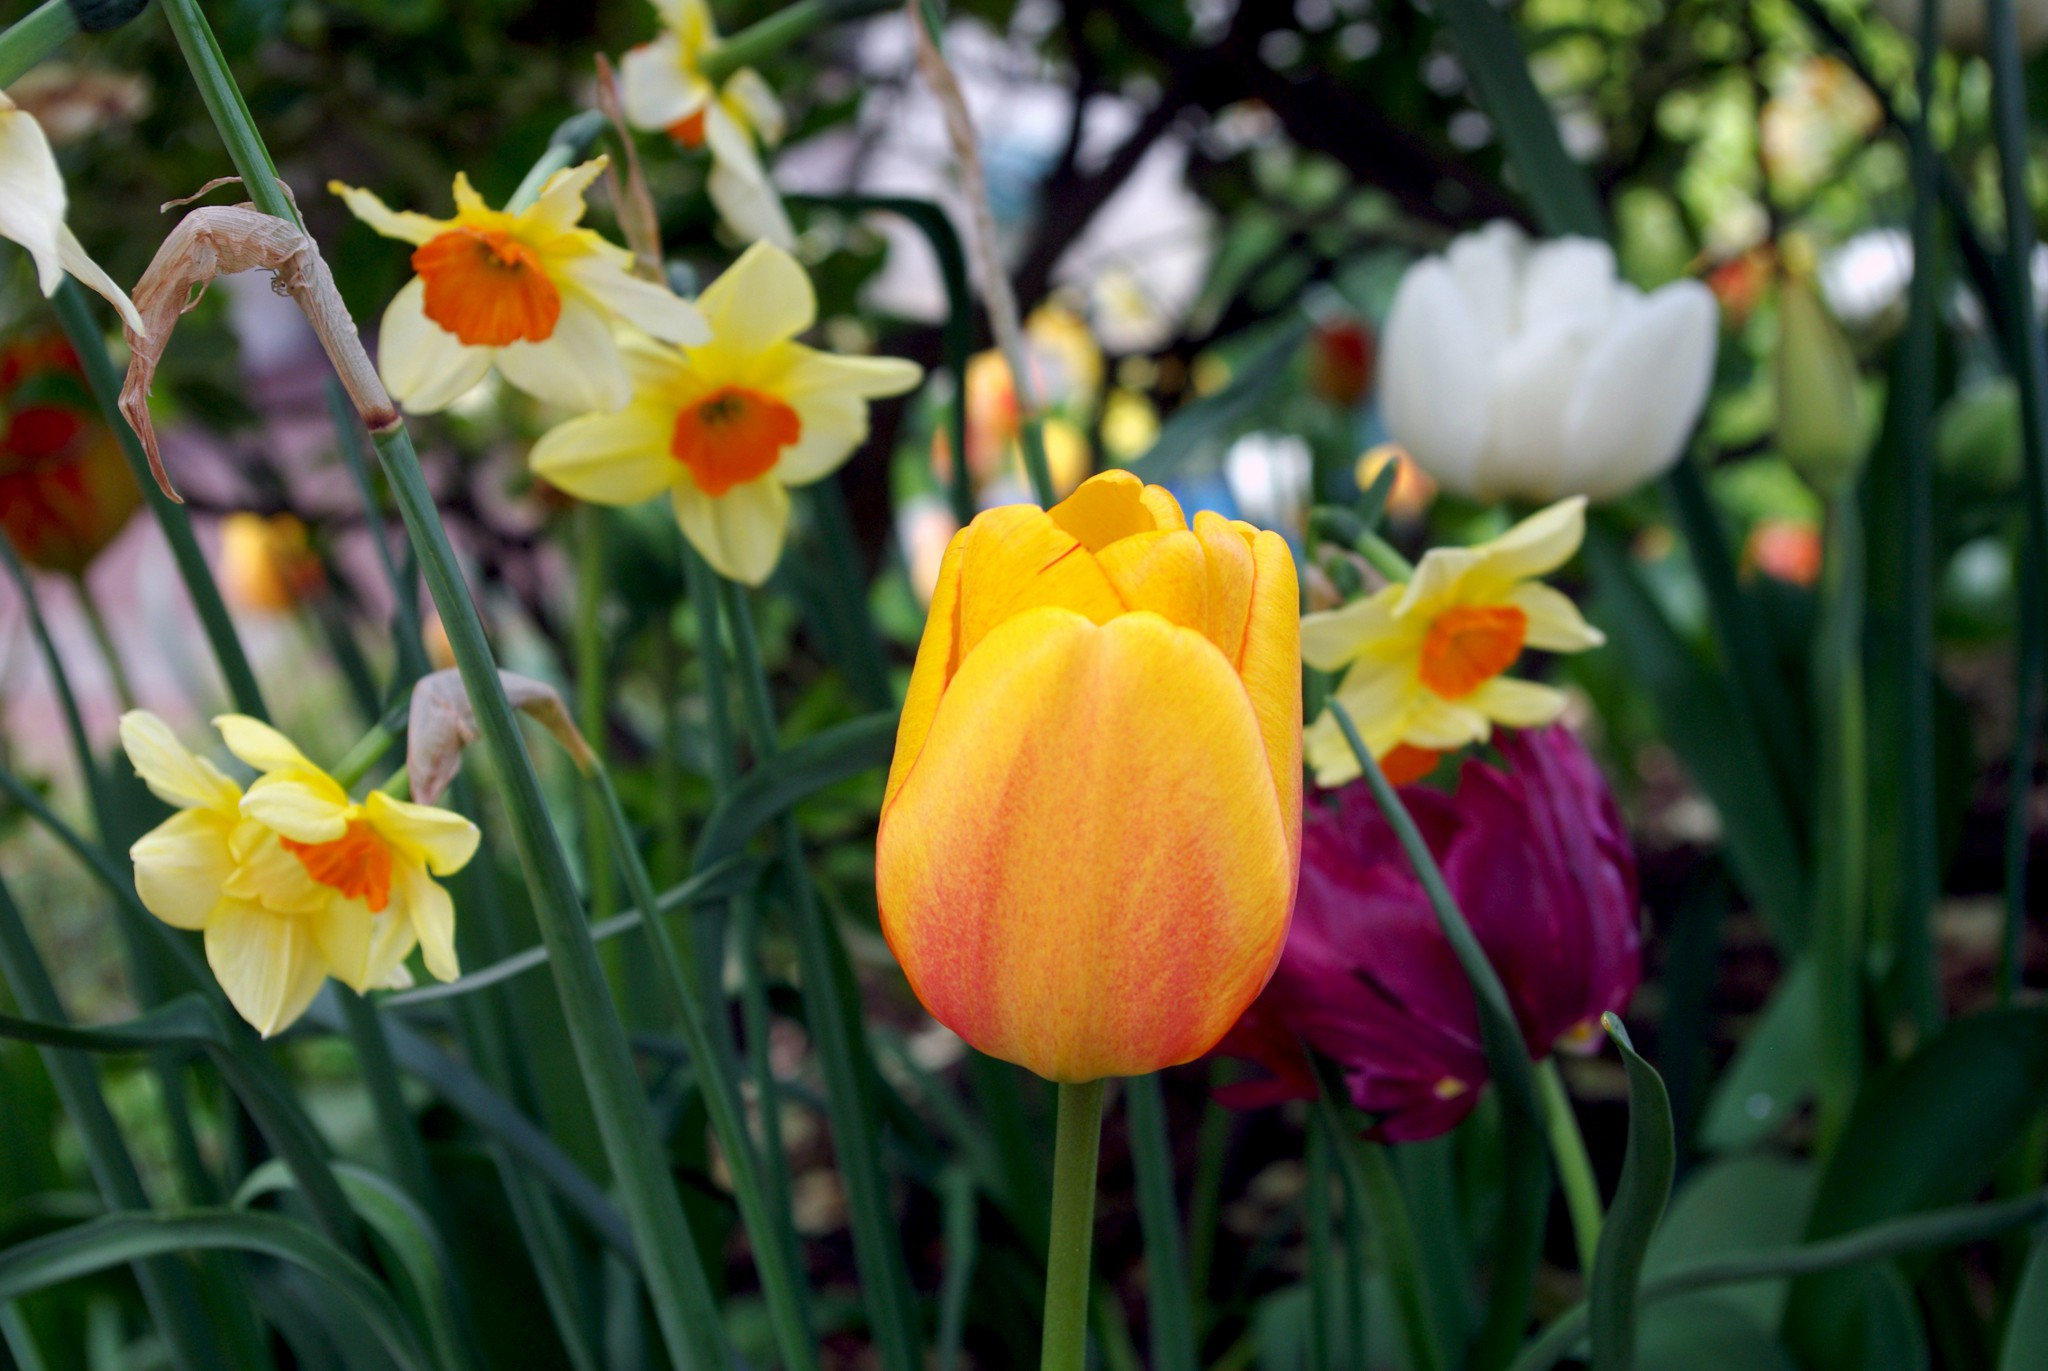 Colourful spring flowers in maisons laffitte french moments the flowers of our residences garden were looking great that morning the colourful tulips daffodils and pale narcissus seemed to have been planted just mightylinksfo Gallery